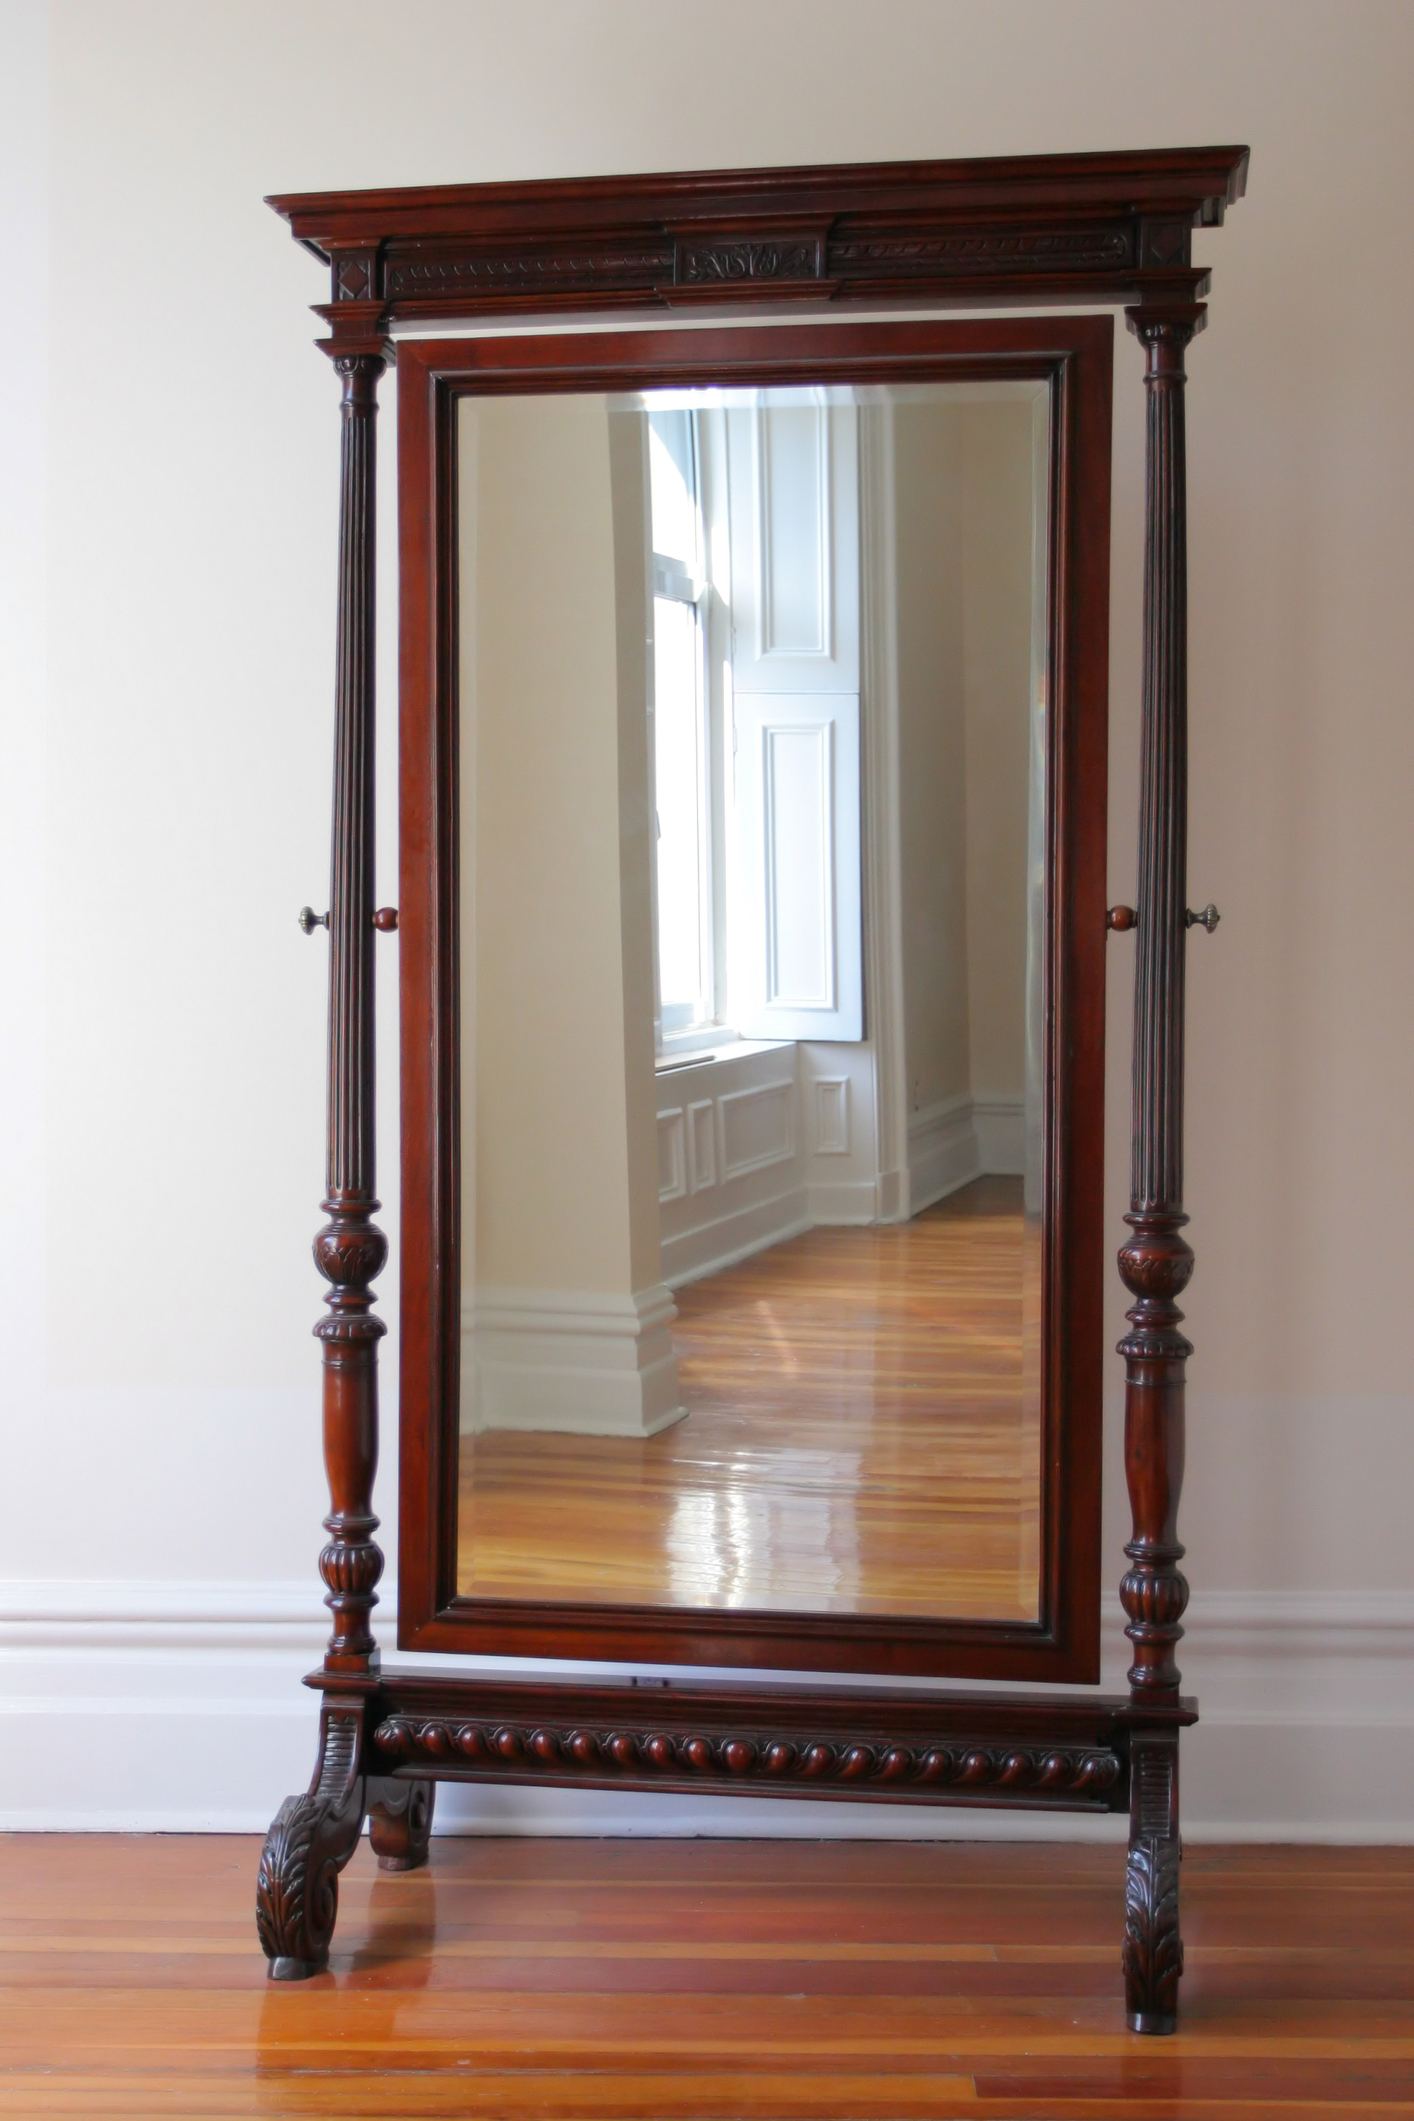 Big antique mirror in a wooden frame on legs